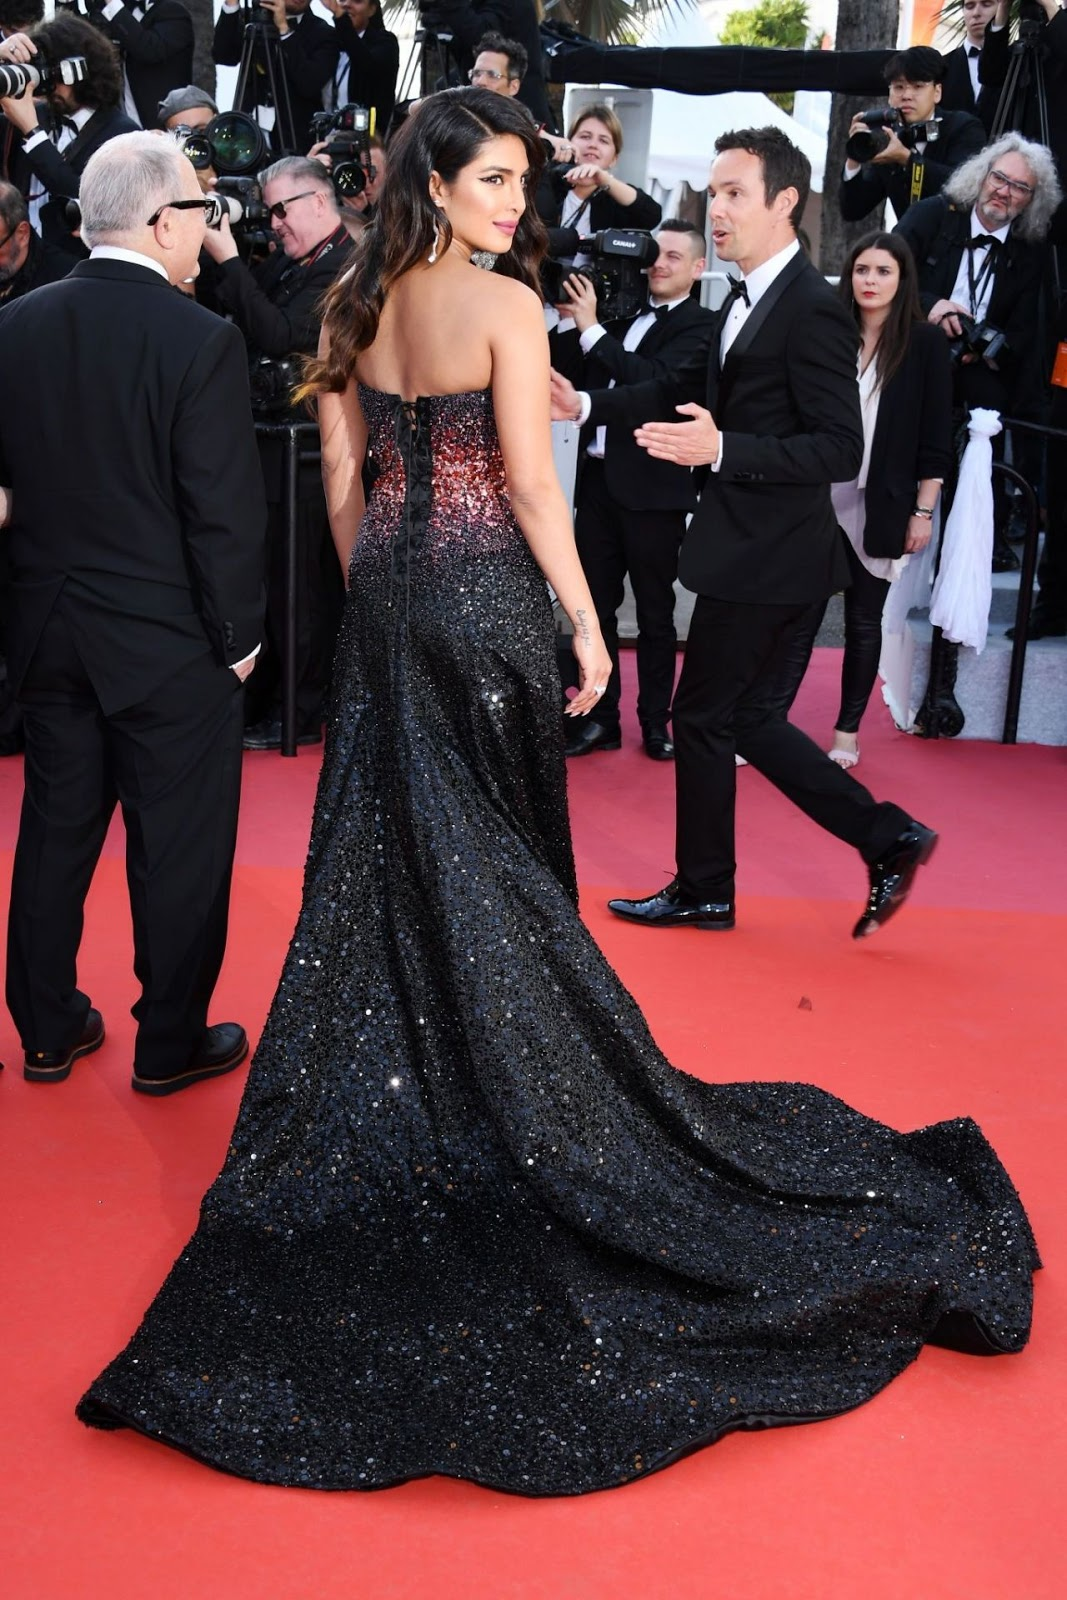 Story image for priyanka chopra from NDTV Cannes 2019: Priyanka Chopra Looks Ethereal On The Red Carpet NDTV-1 hour ago Actress Priyanka Chopra made her debut at Cannes Film Festival in a blinding strapless gown